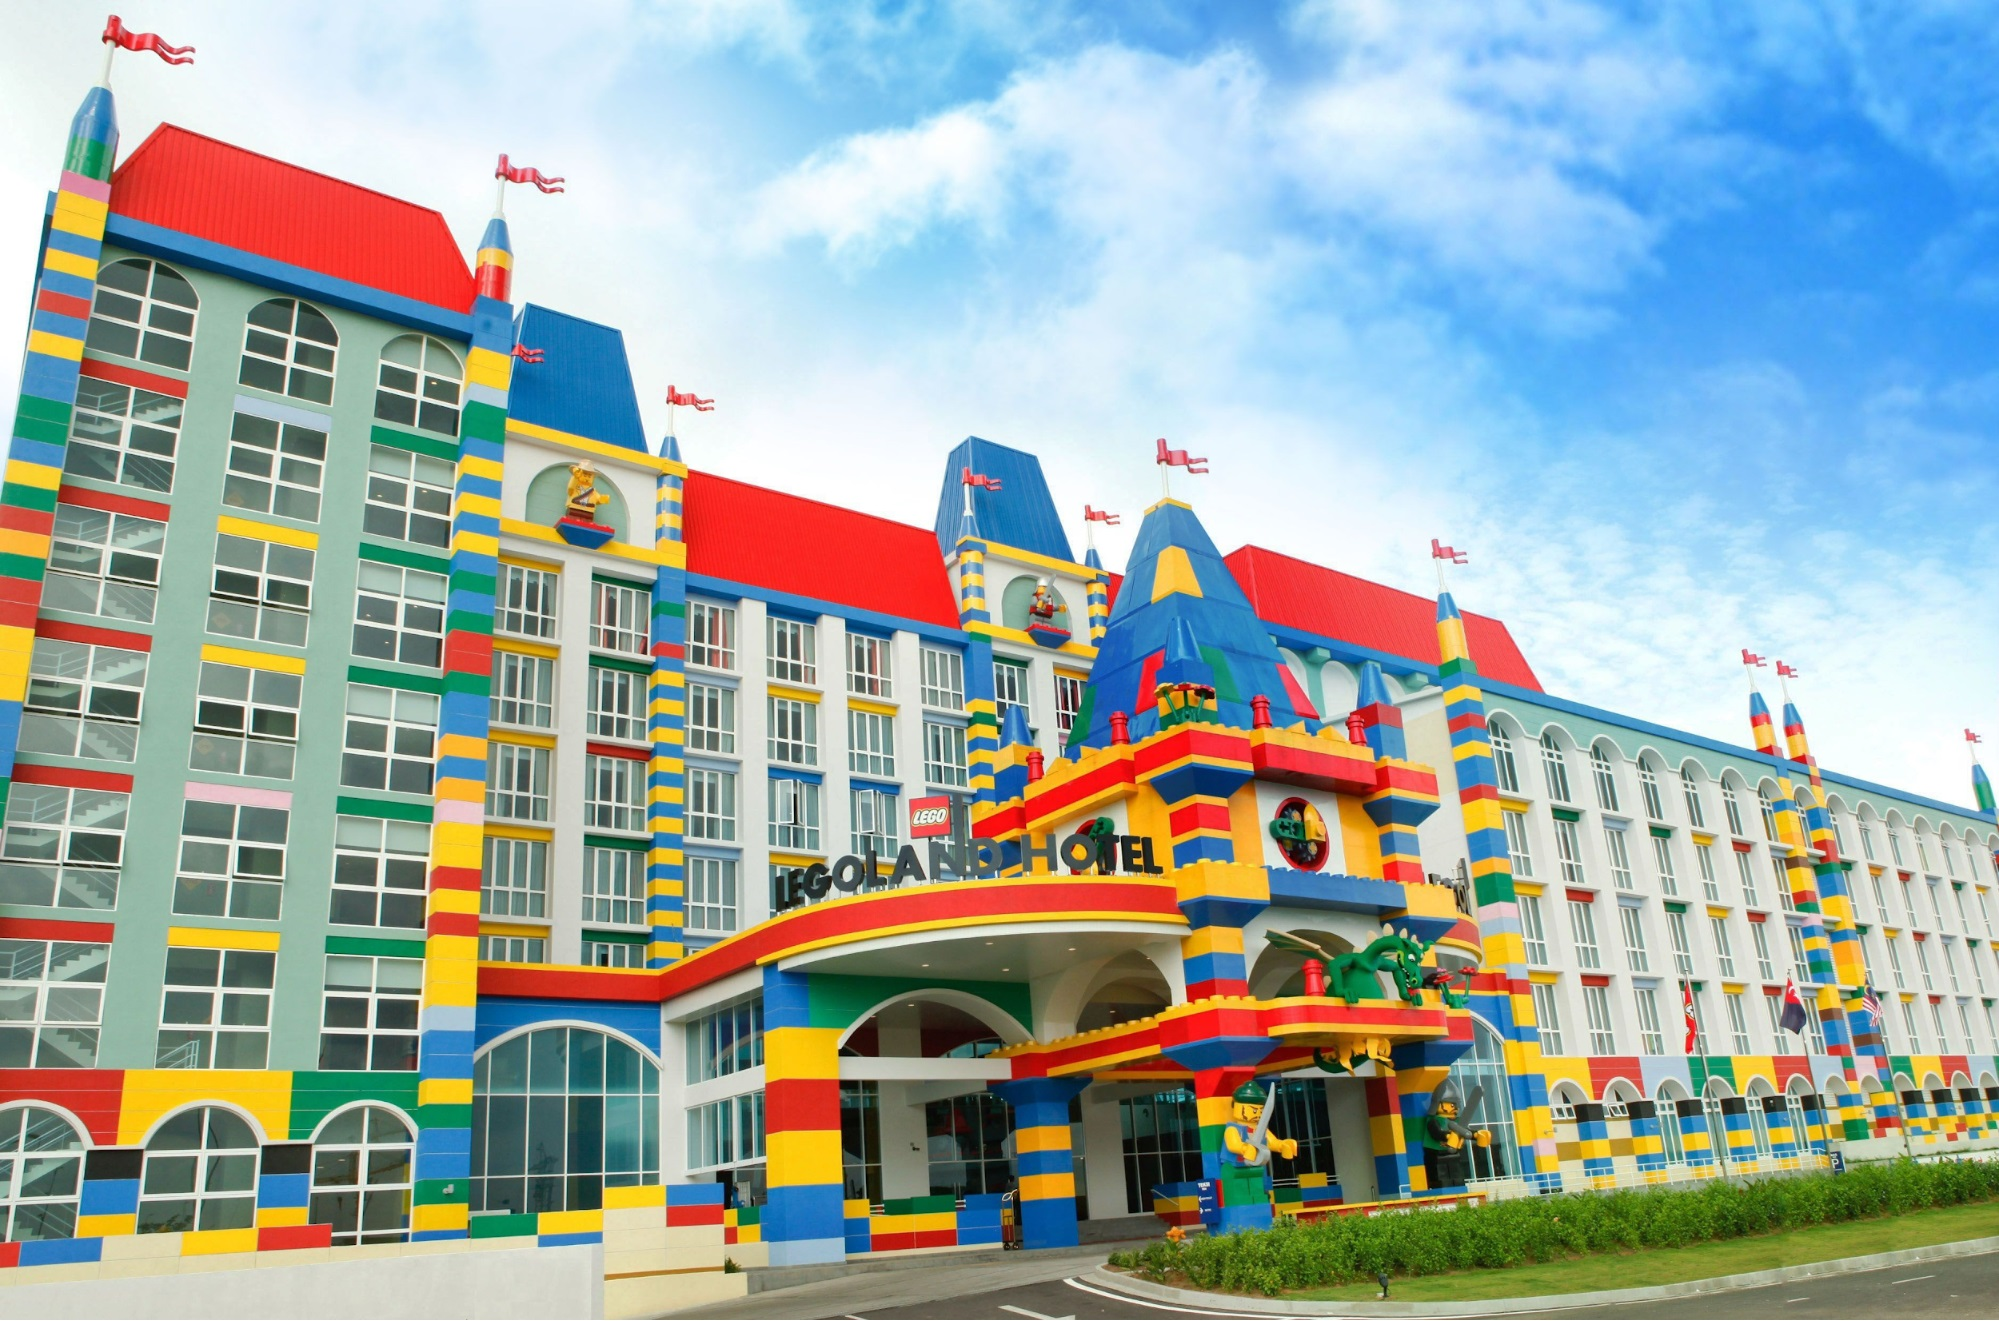 [REVISED] Legoland M'sia Has A New Aquarium, VR Roller Coaster & Pirate-Themed Rooms For School Break Staycays hotel